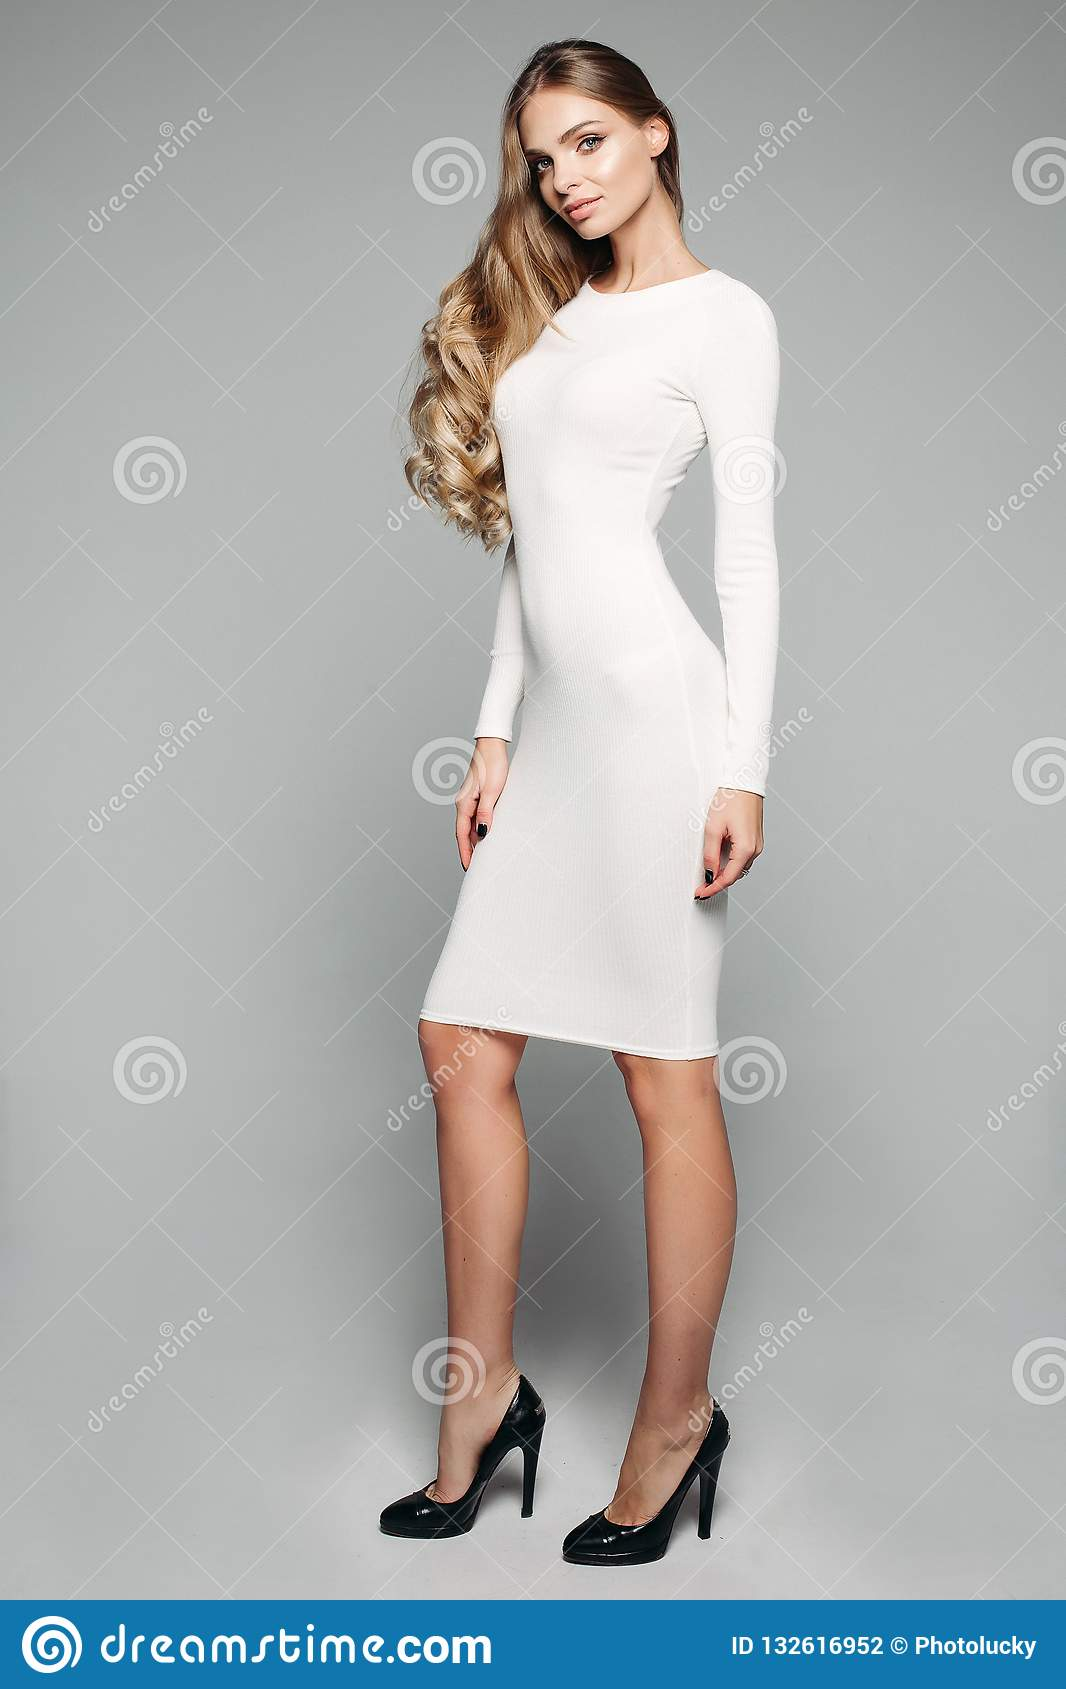 86d7bc7d6ea Stunning Blonde Girl In White Simple Dress And Black Heels. Stock ...